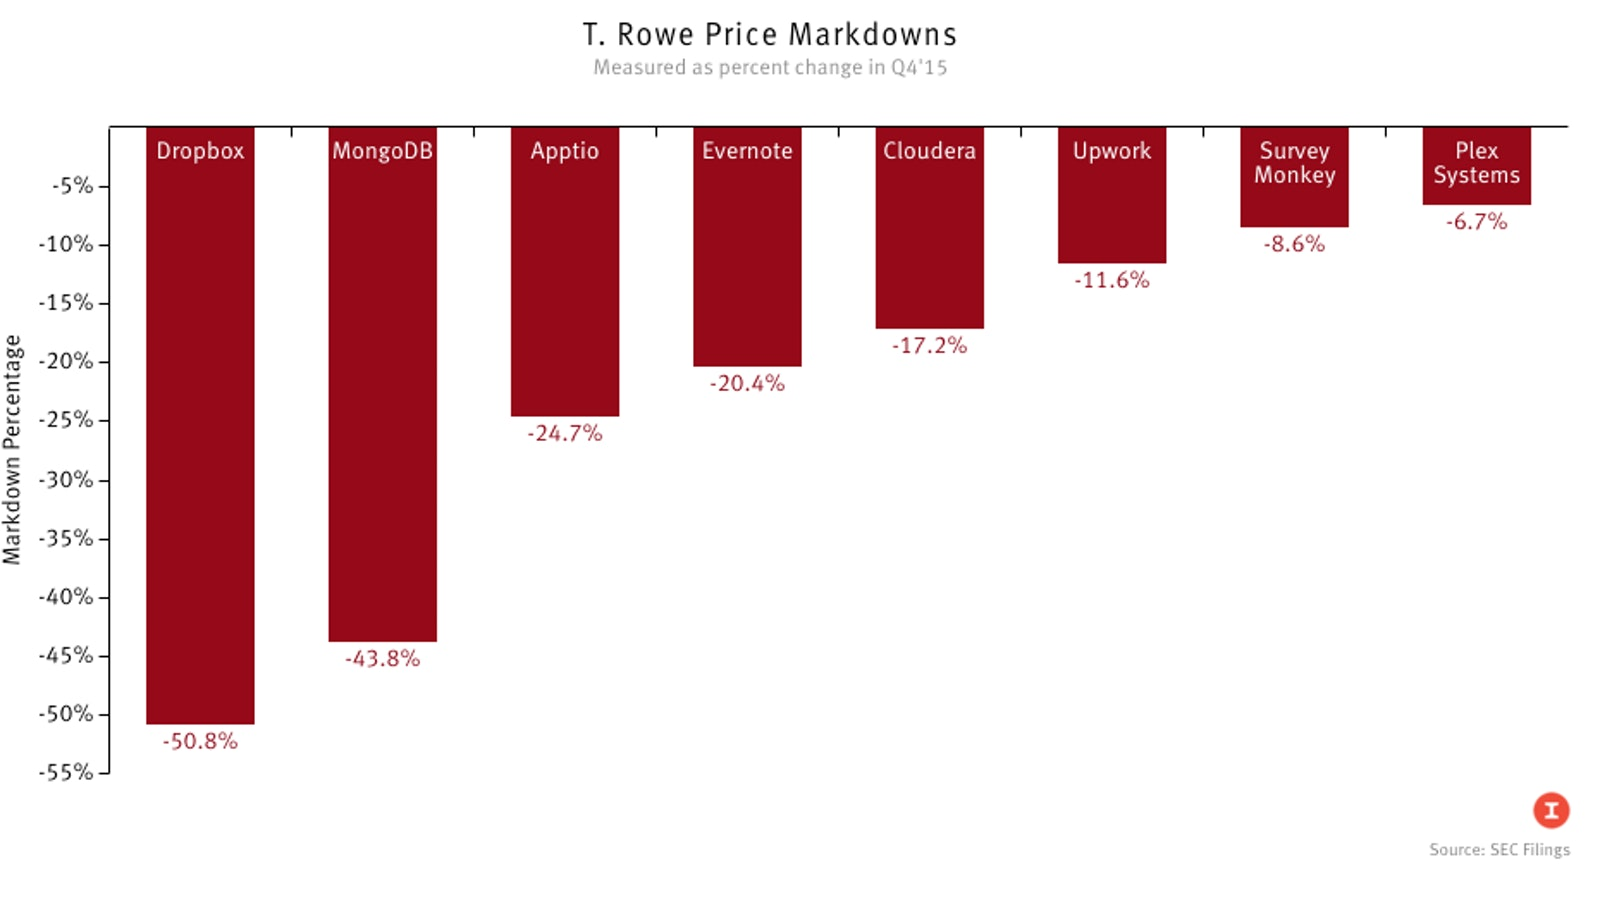 Source: SEC Filings; T. Rowe Price portfolio holdings reports. Graphic by Peter Schulz.